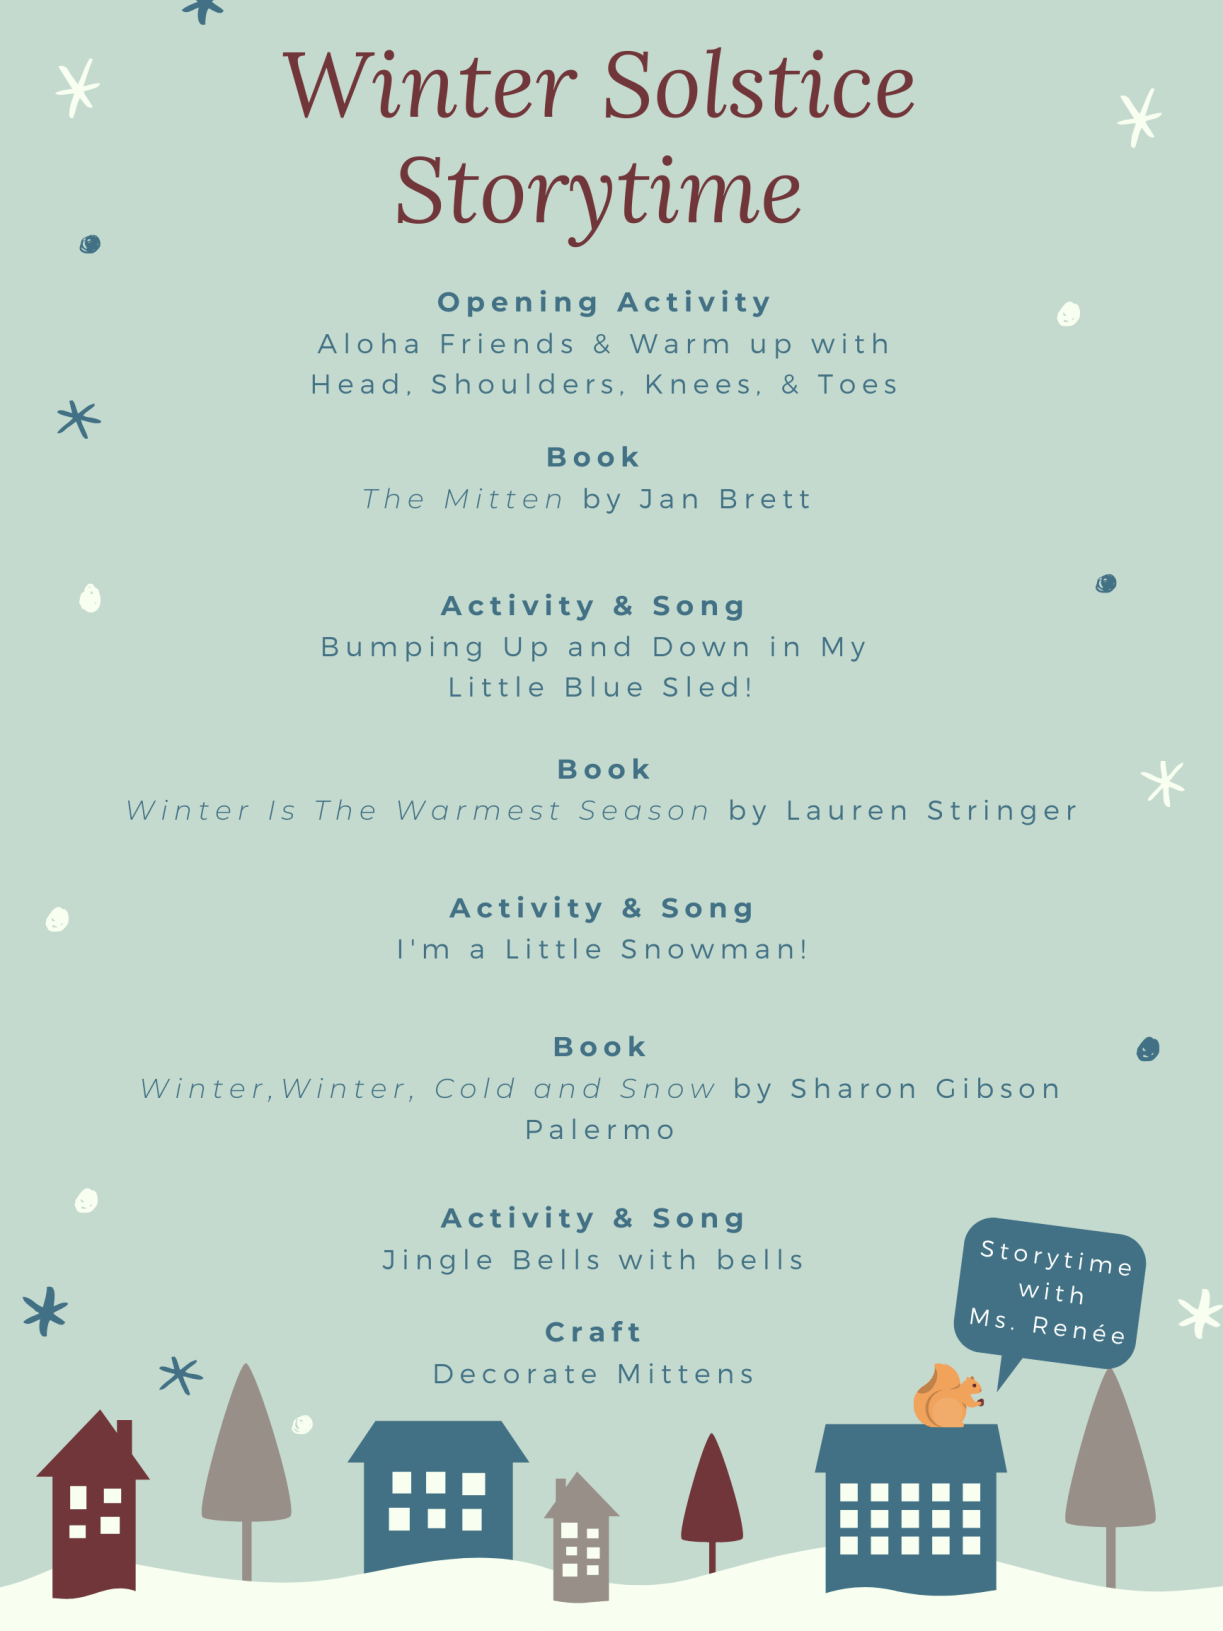 Winter Solstice Storytime Schedule